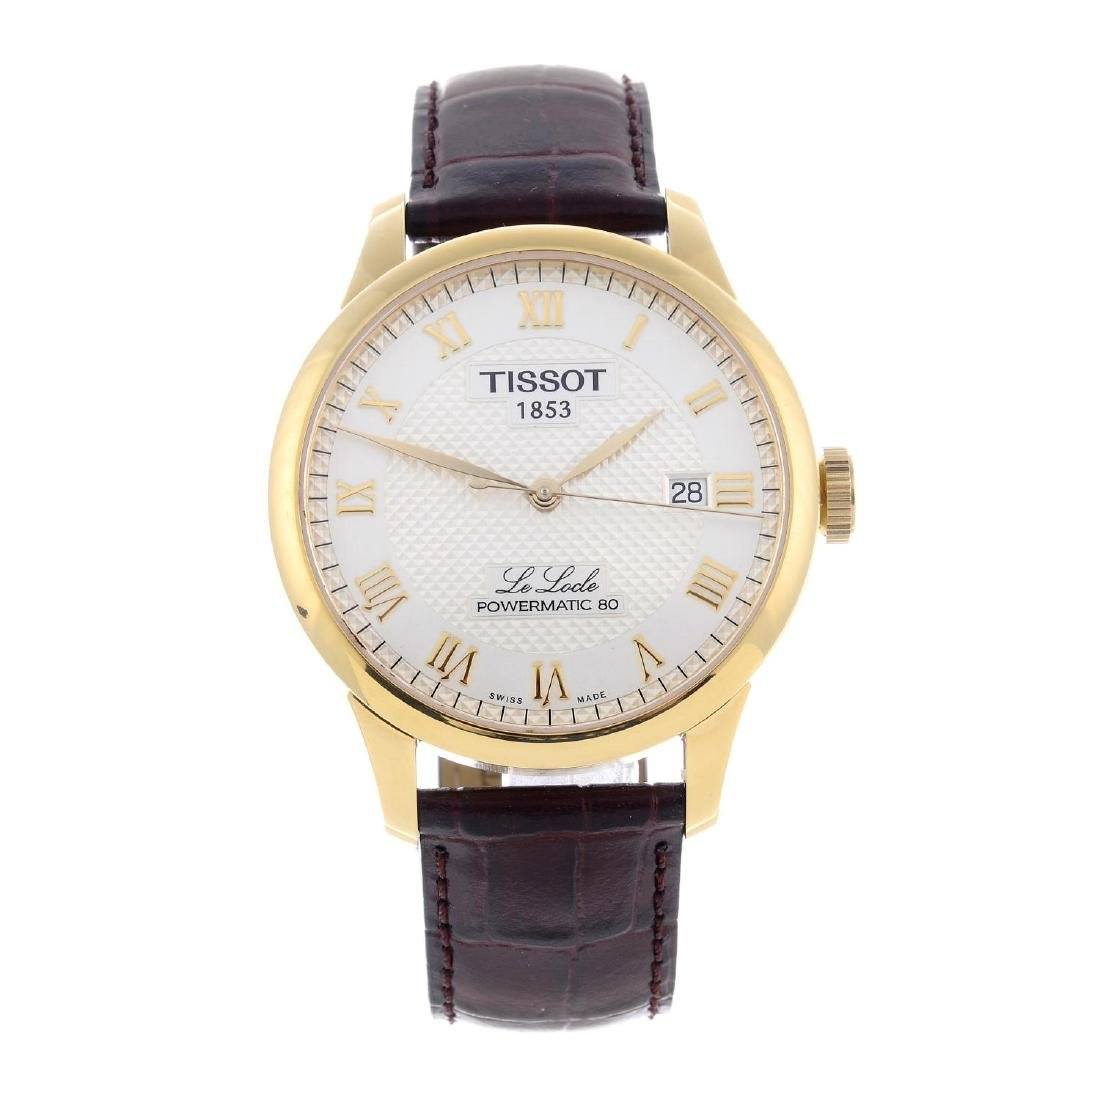 CURRENT MODEL: TISSOT - a gentleman's Le Locle wrist